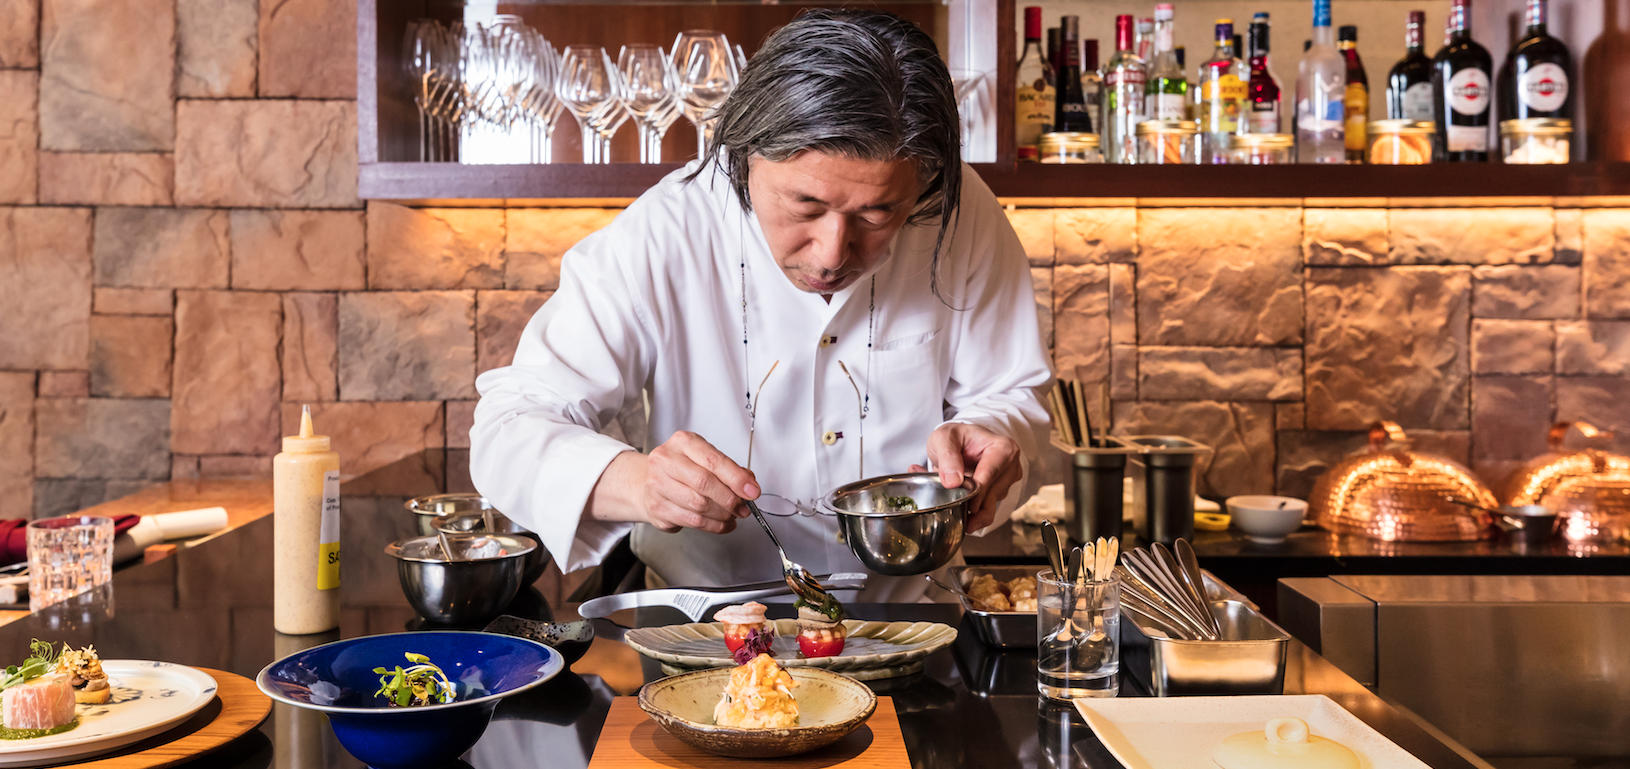 Teppan By Chef Yonemura Opens Its First Outpost Outside Japan